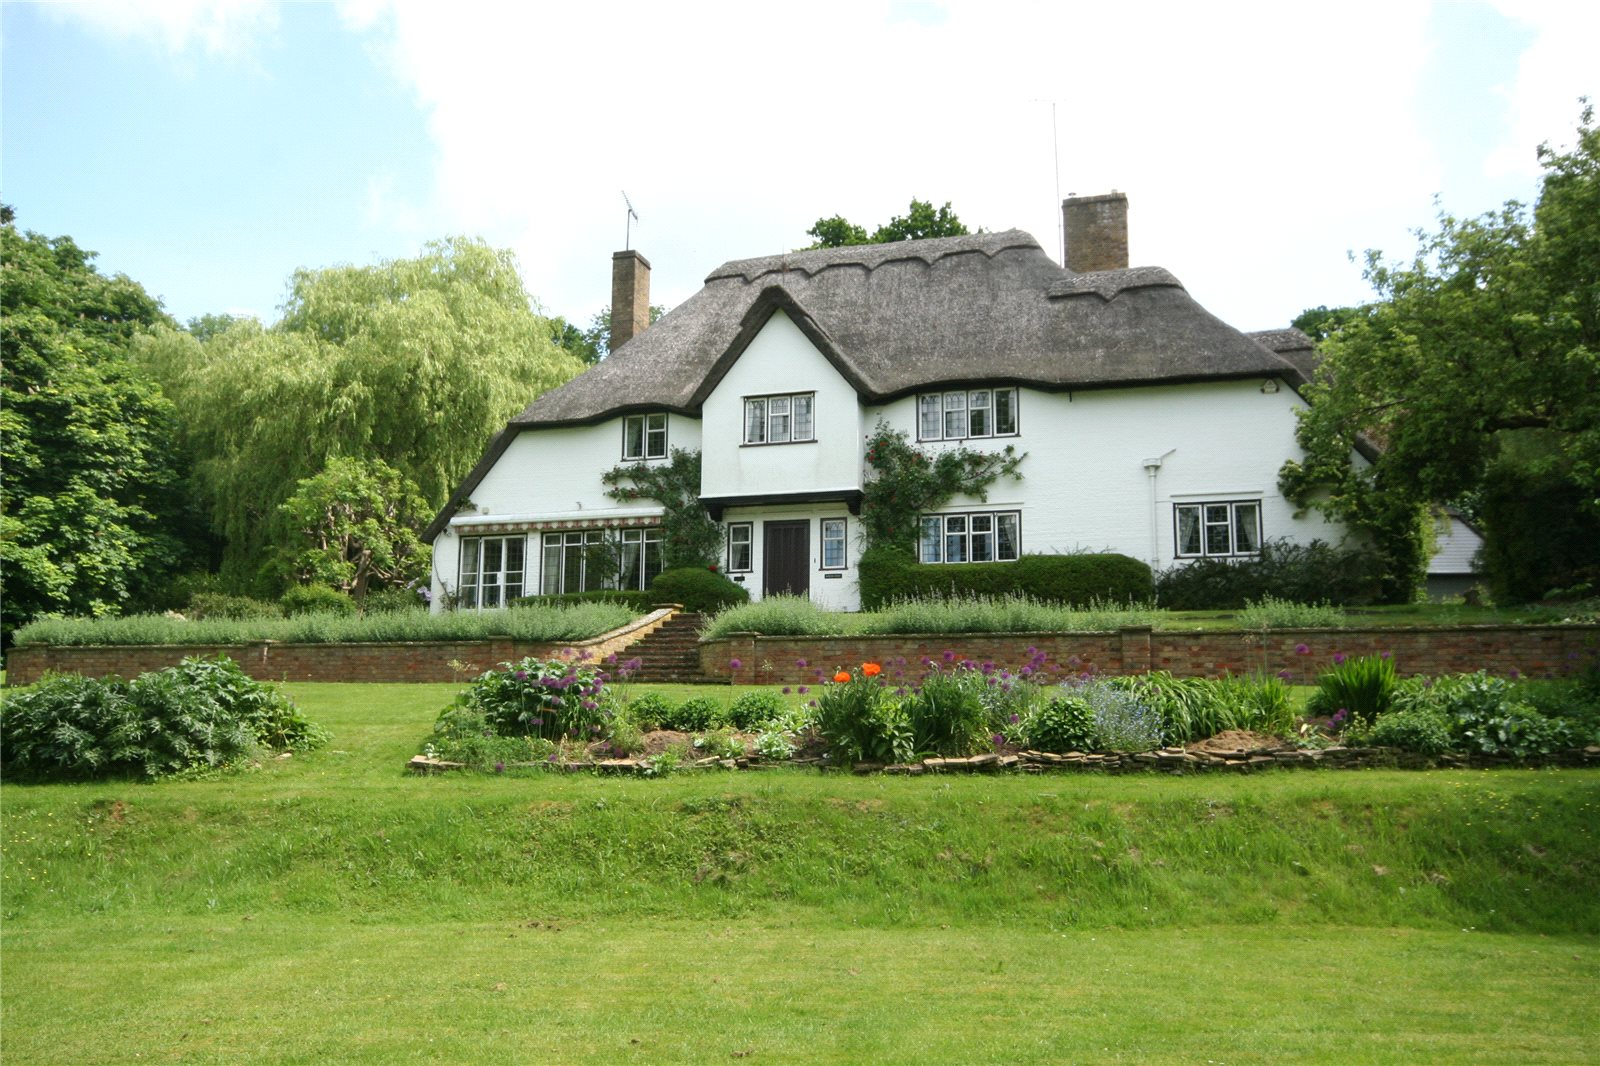 Maison unifamiliale pour l Vente à Hedgerley Lane, Gerrards Cross, Buckinghamshire, SL9 Gerrards Cross, Angleterre